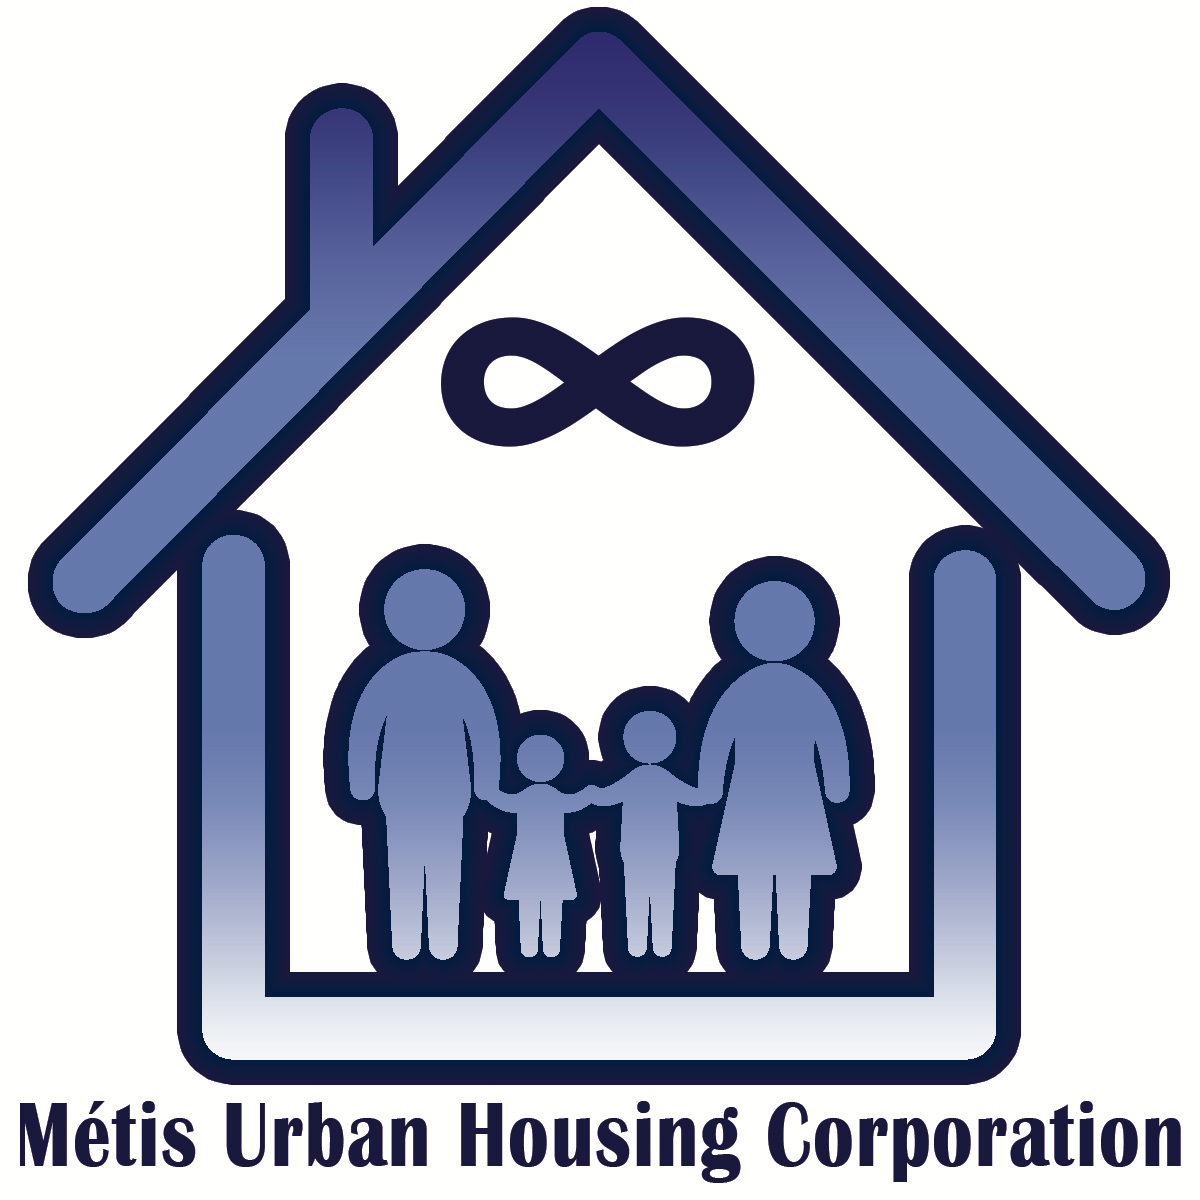 Metis Urban Housing Corporation